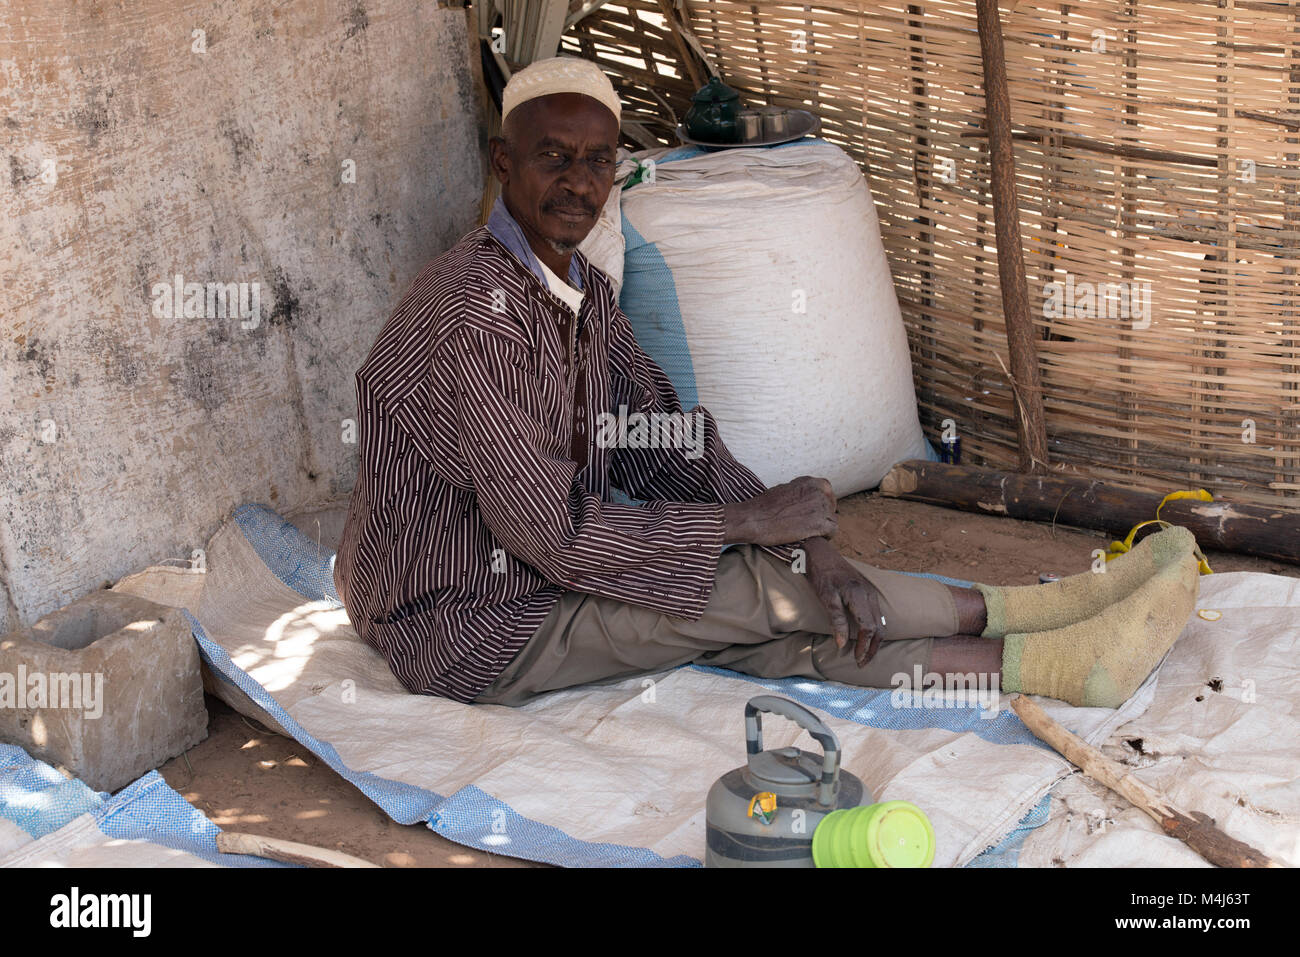 An ethnic Mandinka (Mandingo) man shelters from the midday sun in his basic house in a remote Gambian village, West - Stock Image